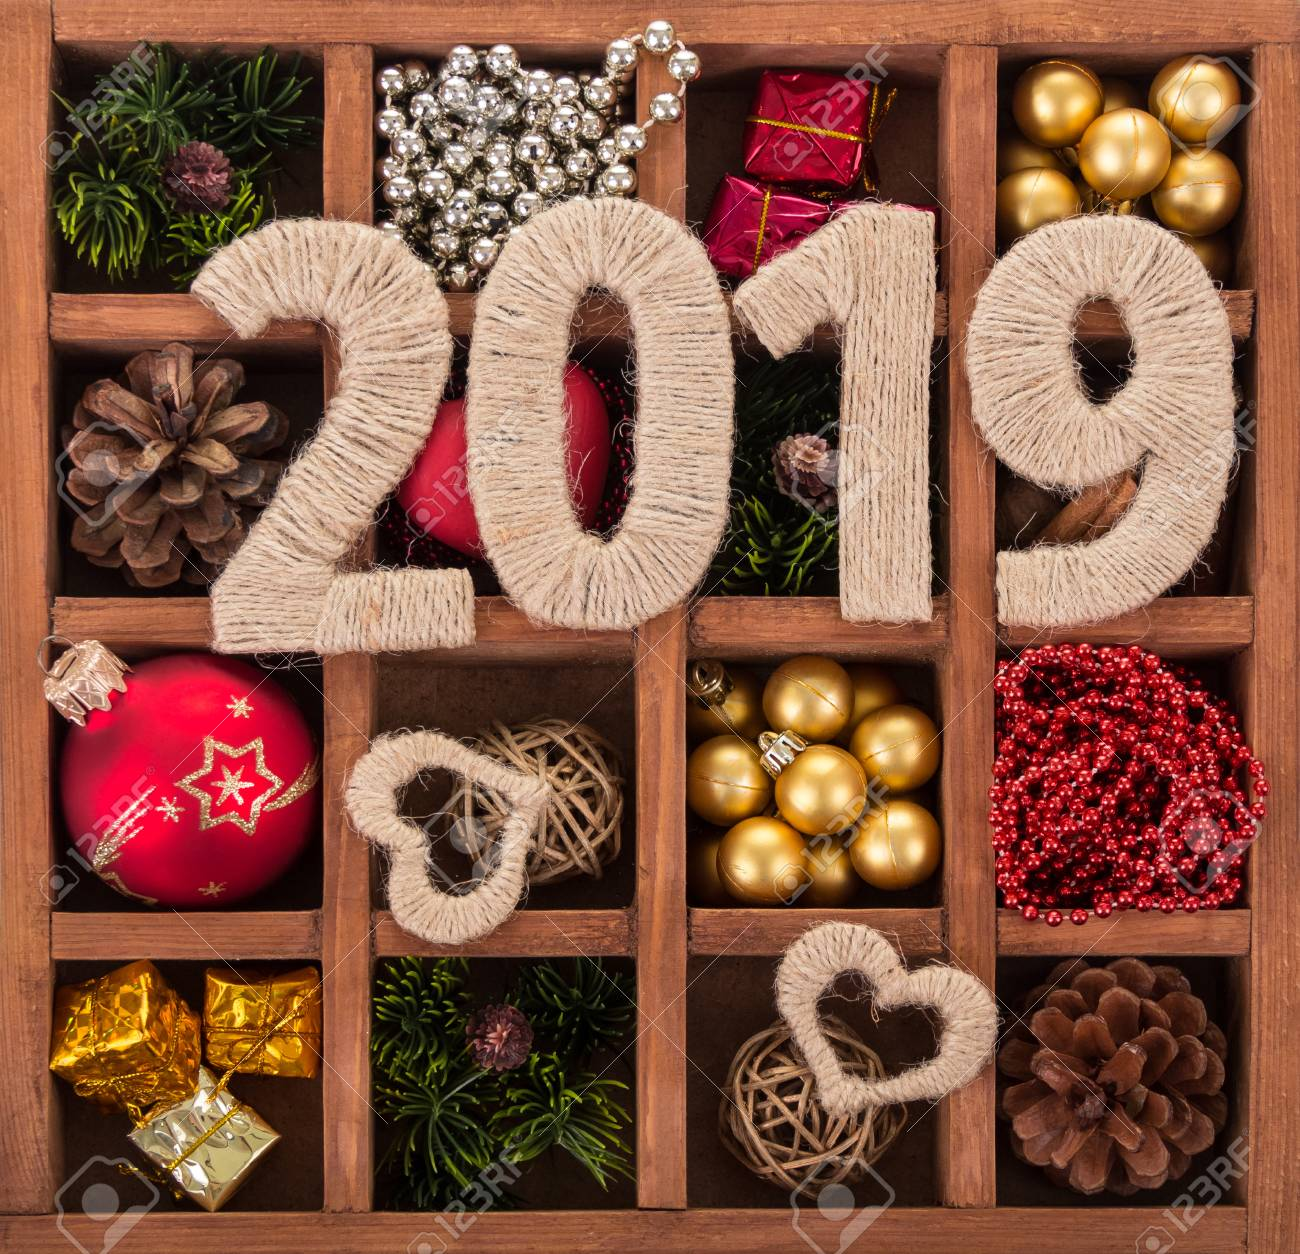 Many Christmas Decorations, Small Gifts And Numbers 2019, In.. Stock ...